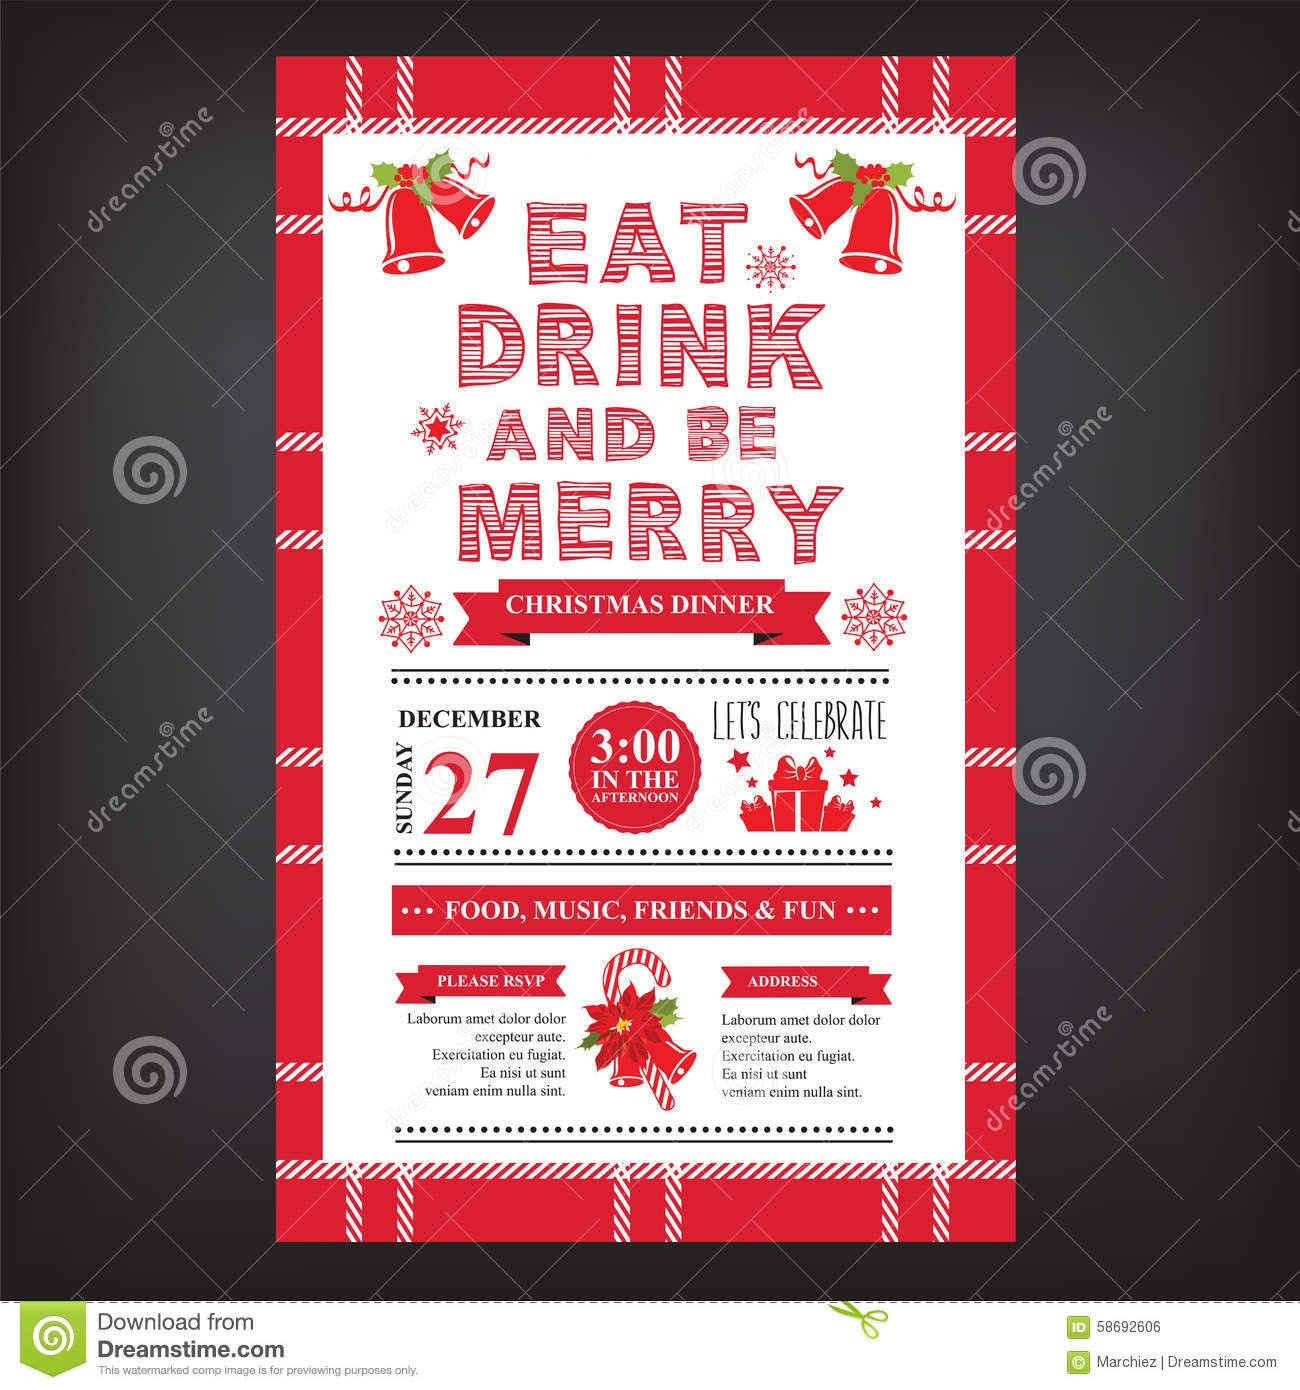 Free Christmas Invitation Templates Online Holiday Party